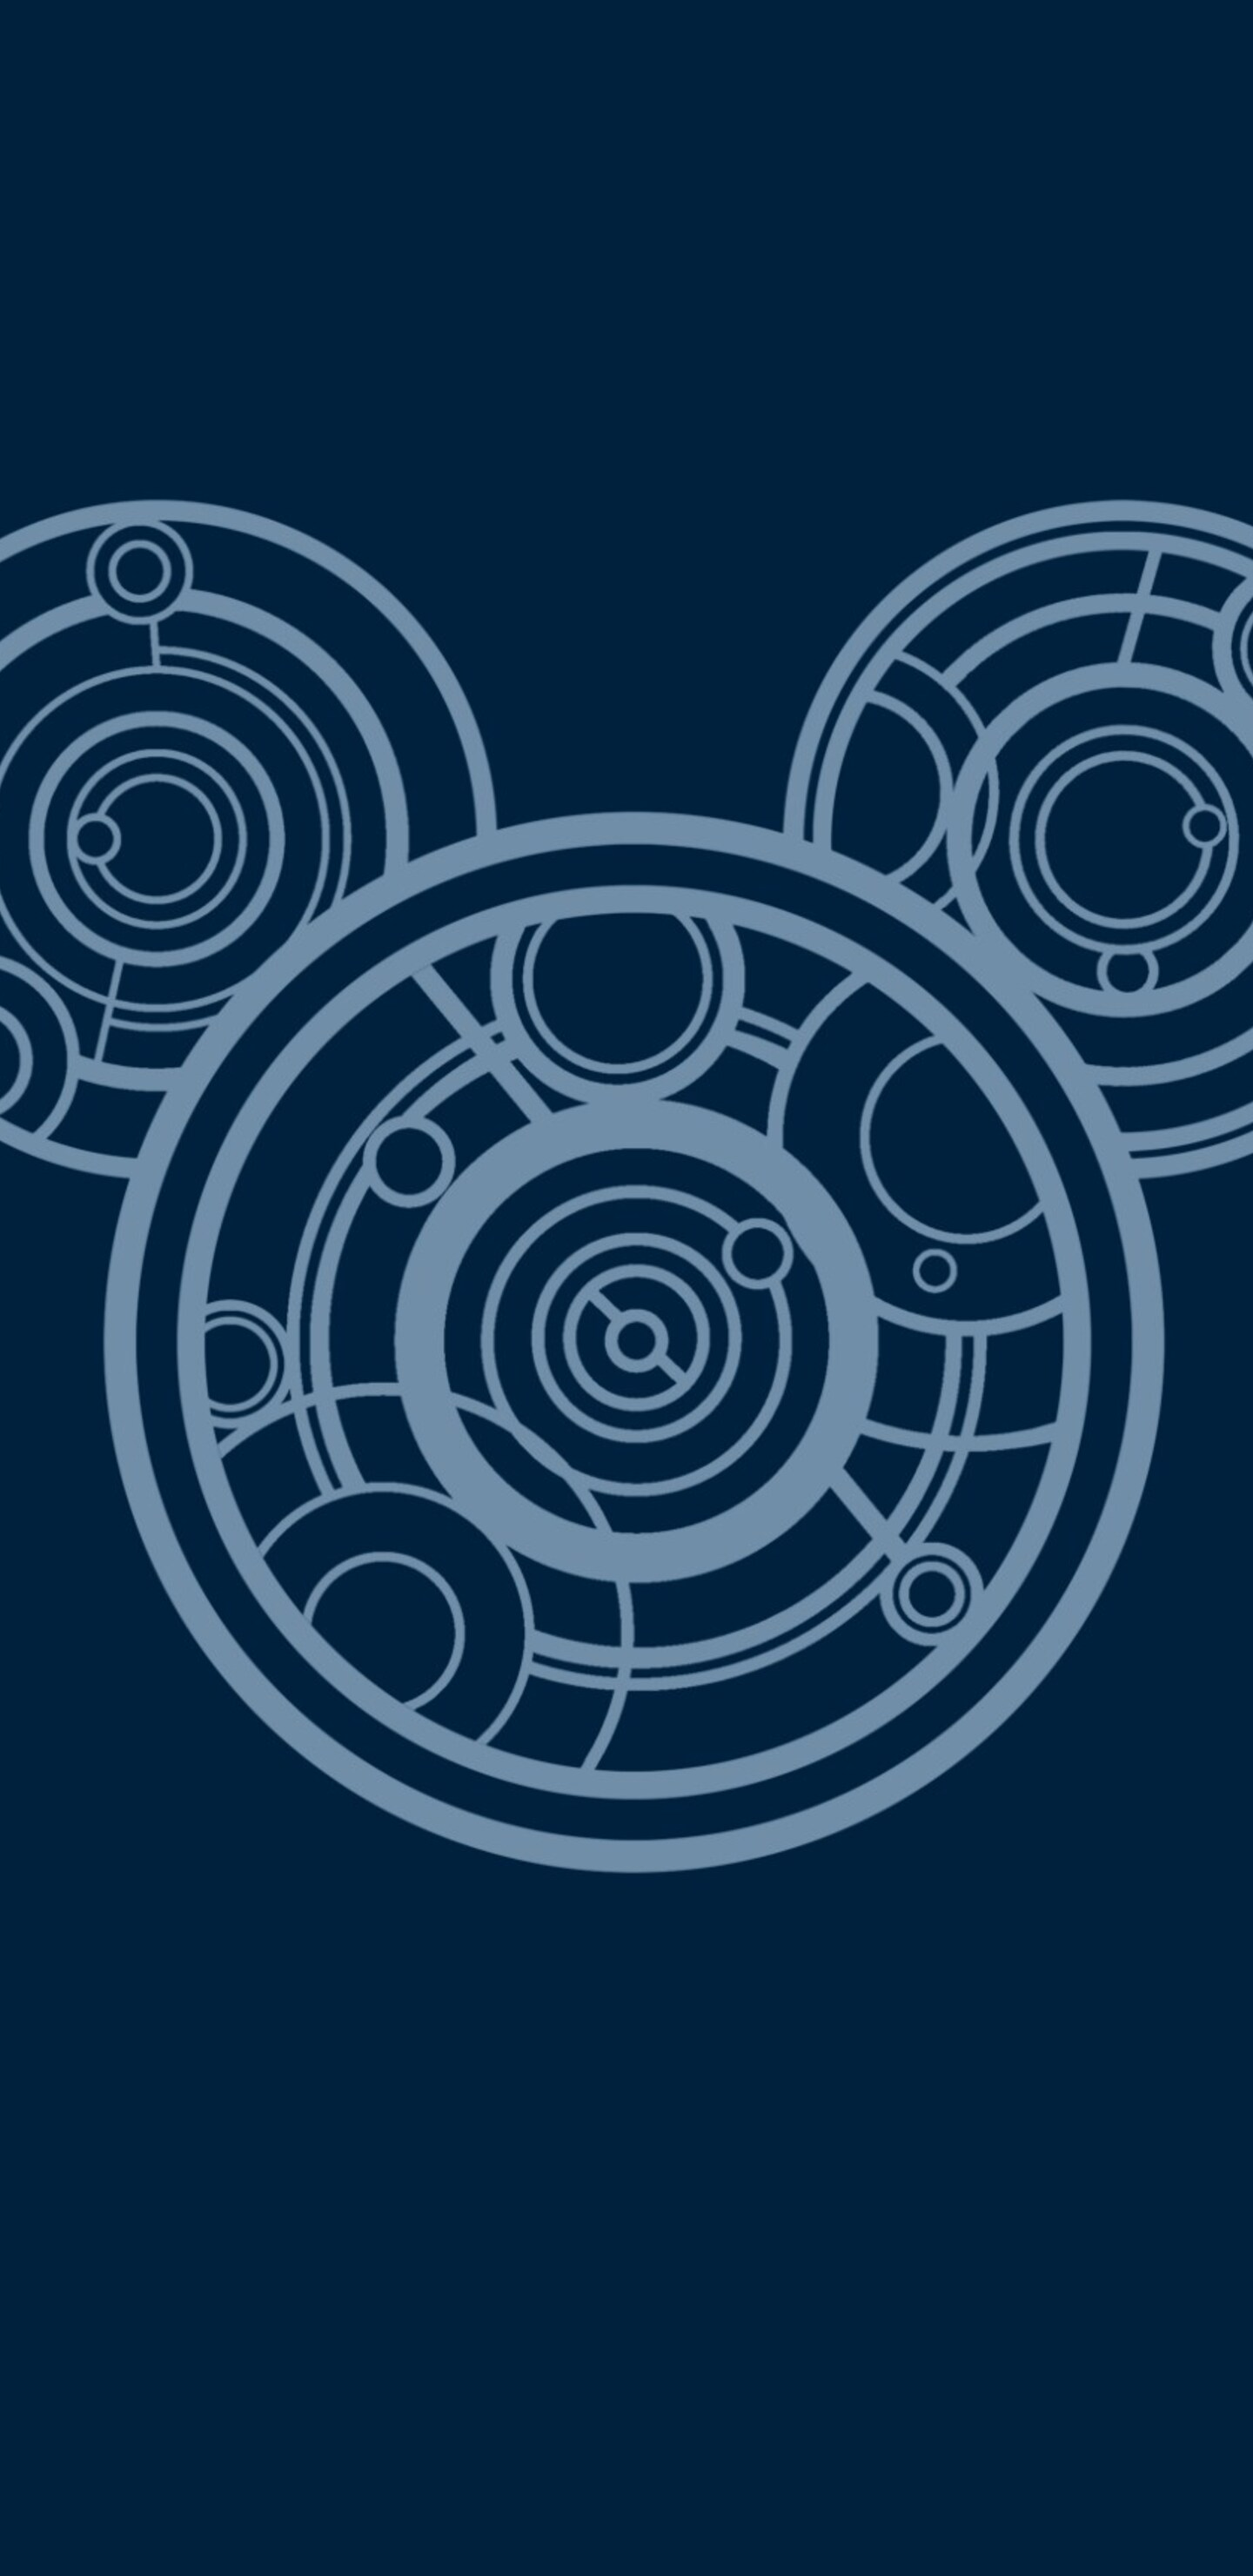 1440x2960 Mickey Mouse Minimalism Samsung Galaxy Note 9,8, S9,S8,S8+